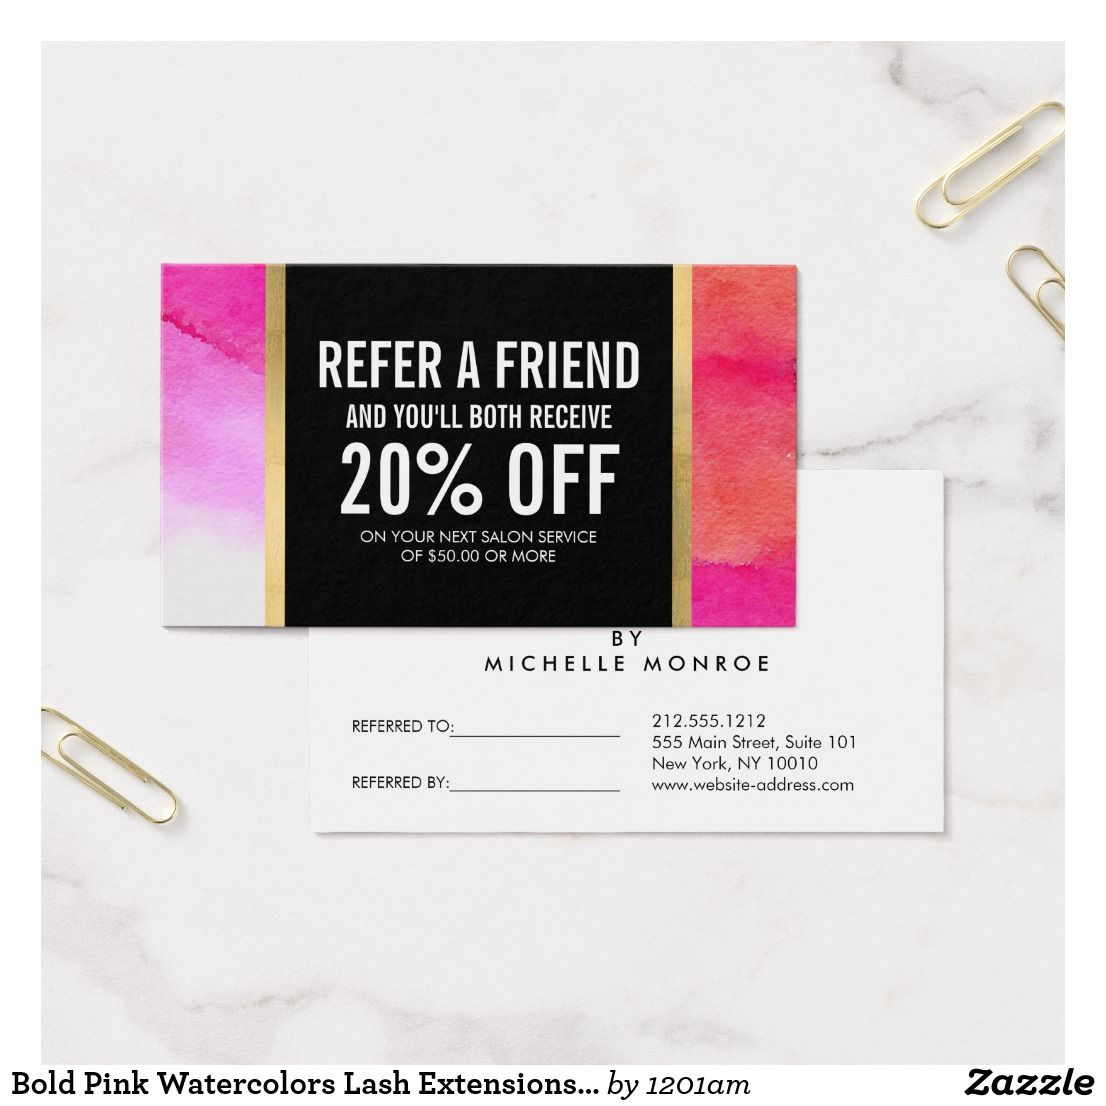 Bold pink watercolors lash extensions referral zazzle